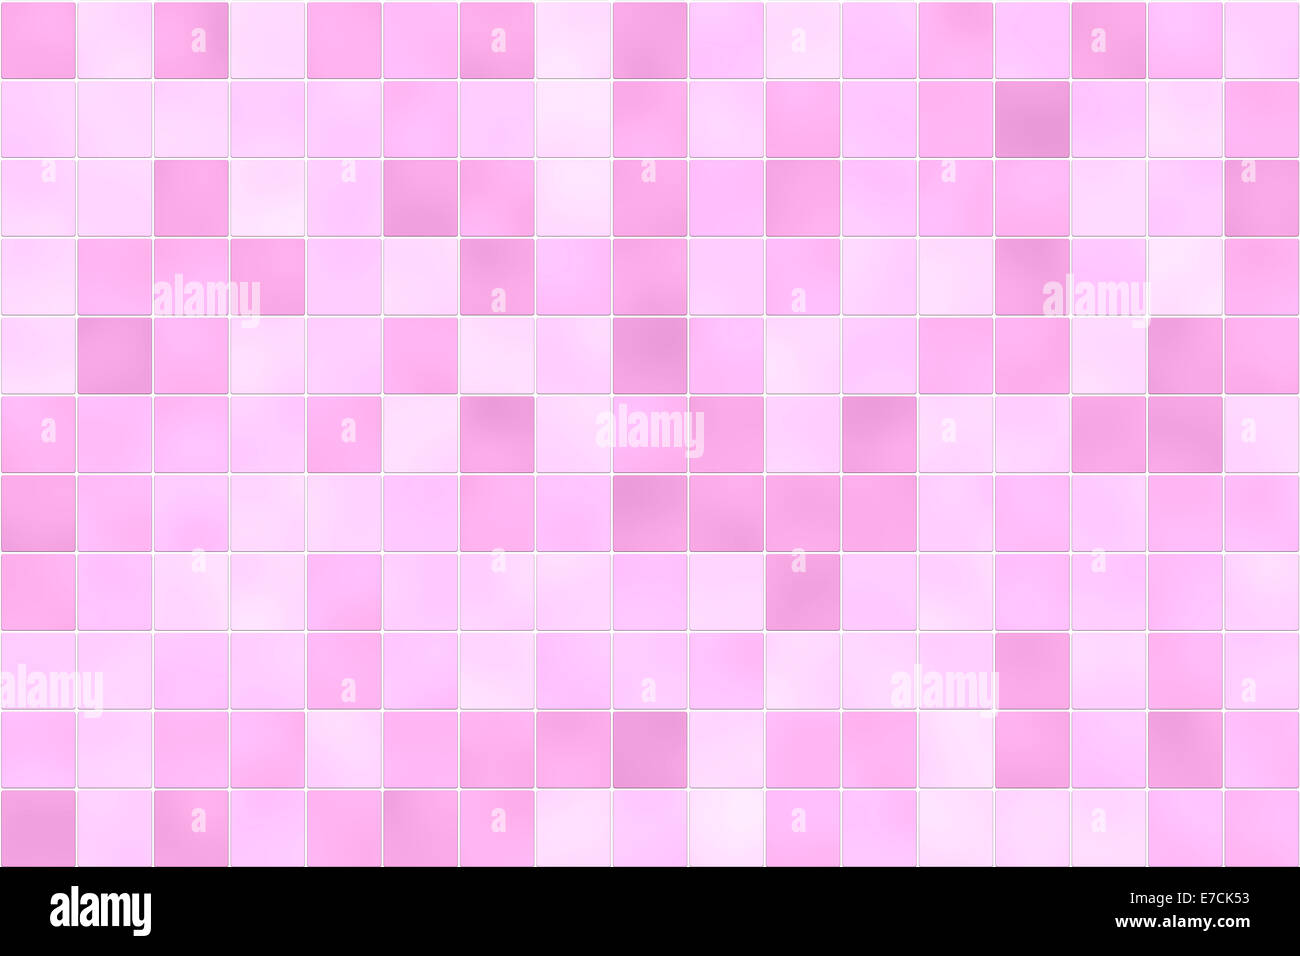 Raster Illustration Of Square Bathroom Shower Tiles In Random Shades Pink For Use As A Holiday Background Or Design Element